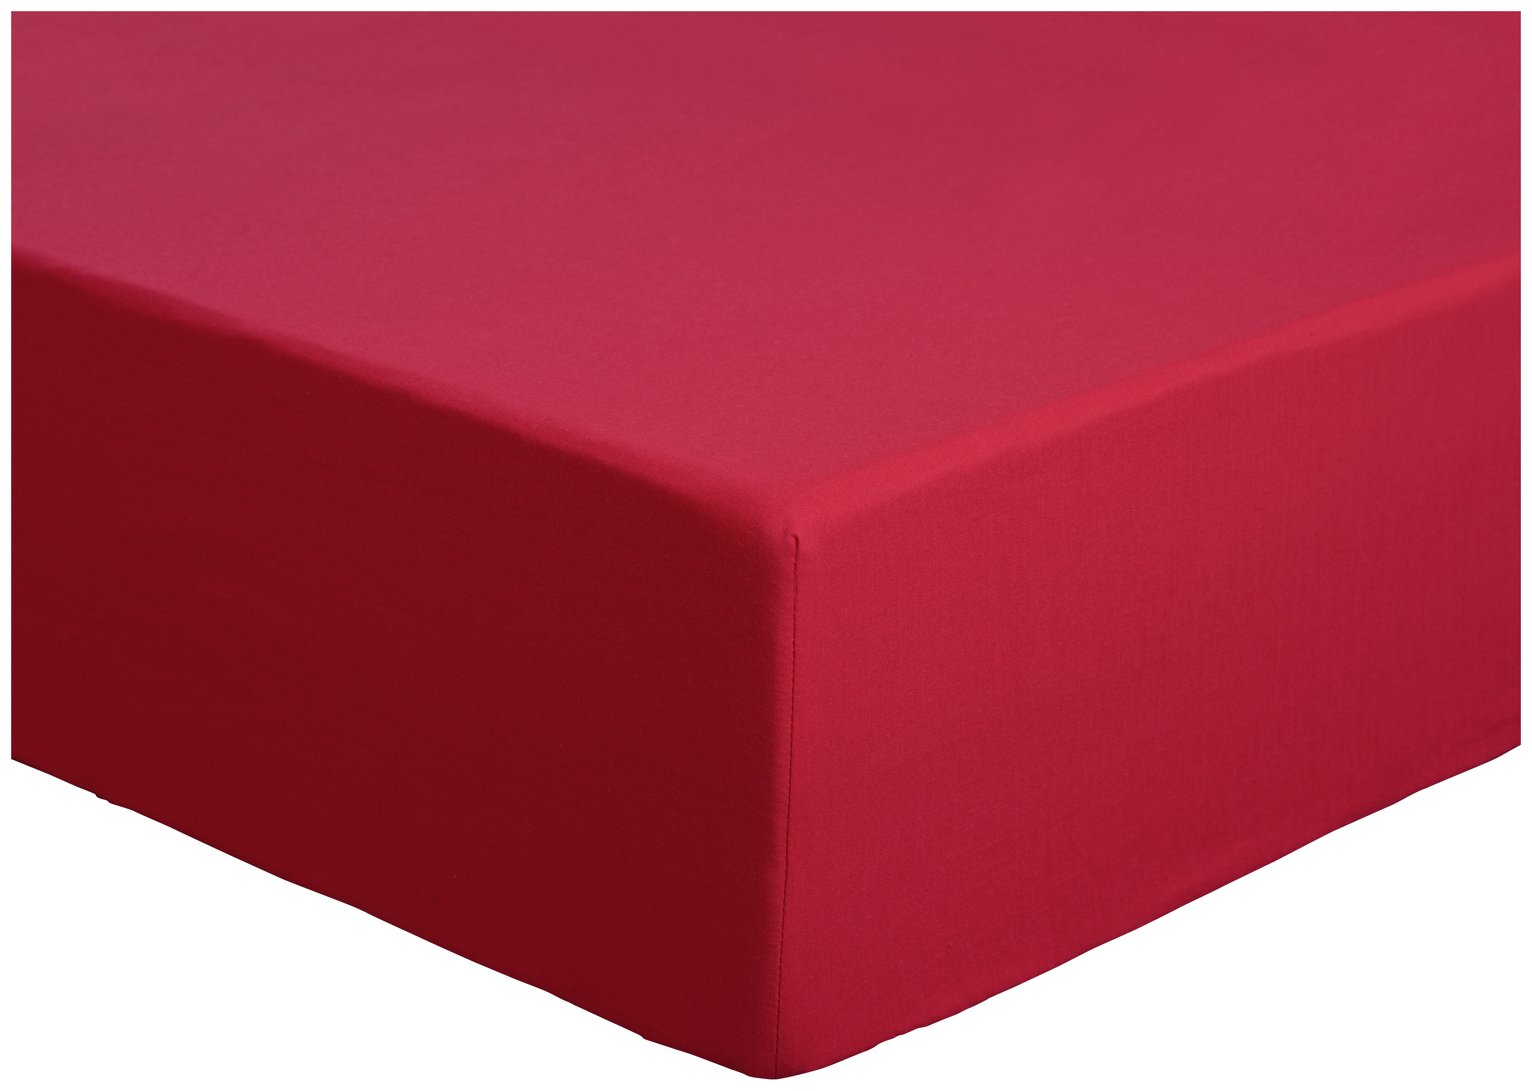 colourmatch poppy red fitted sheet  kingsize